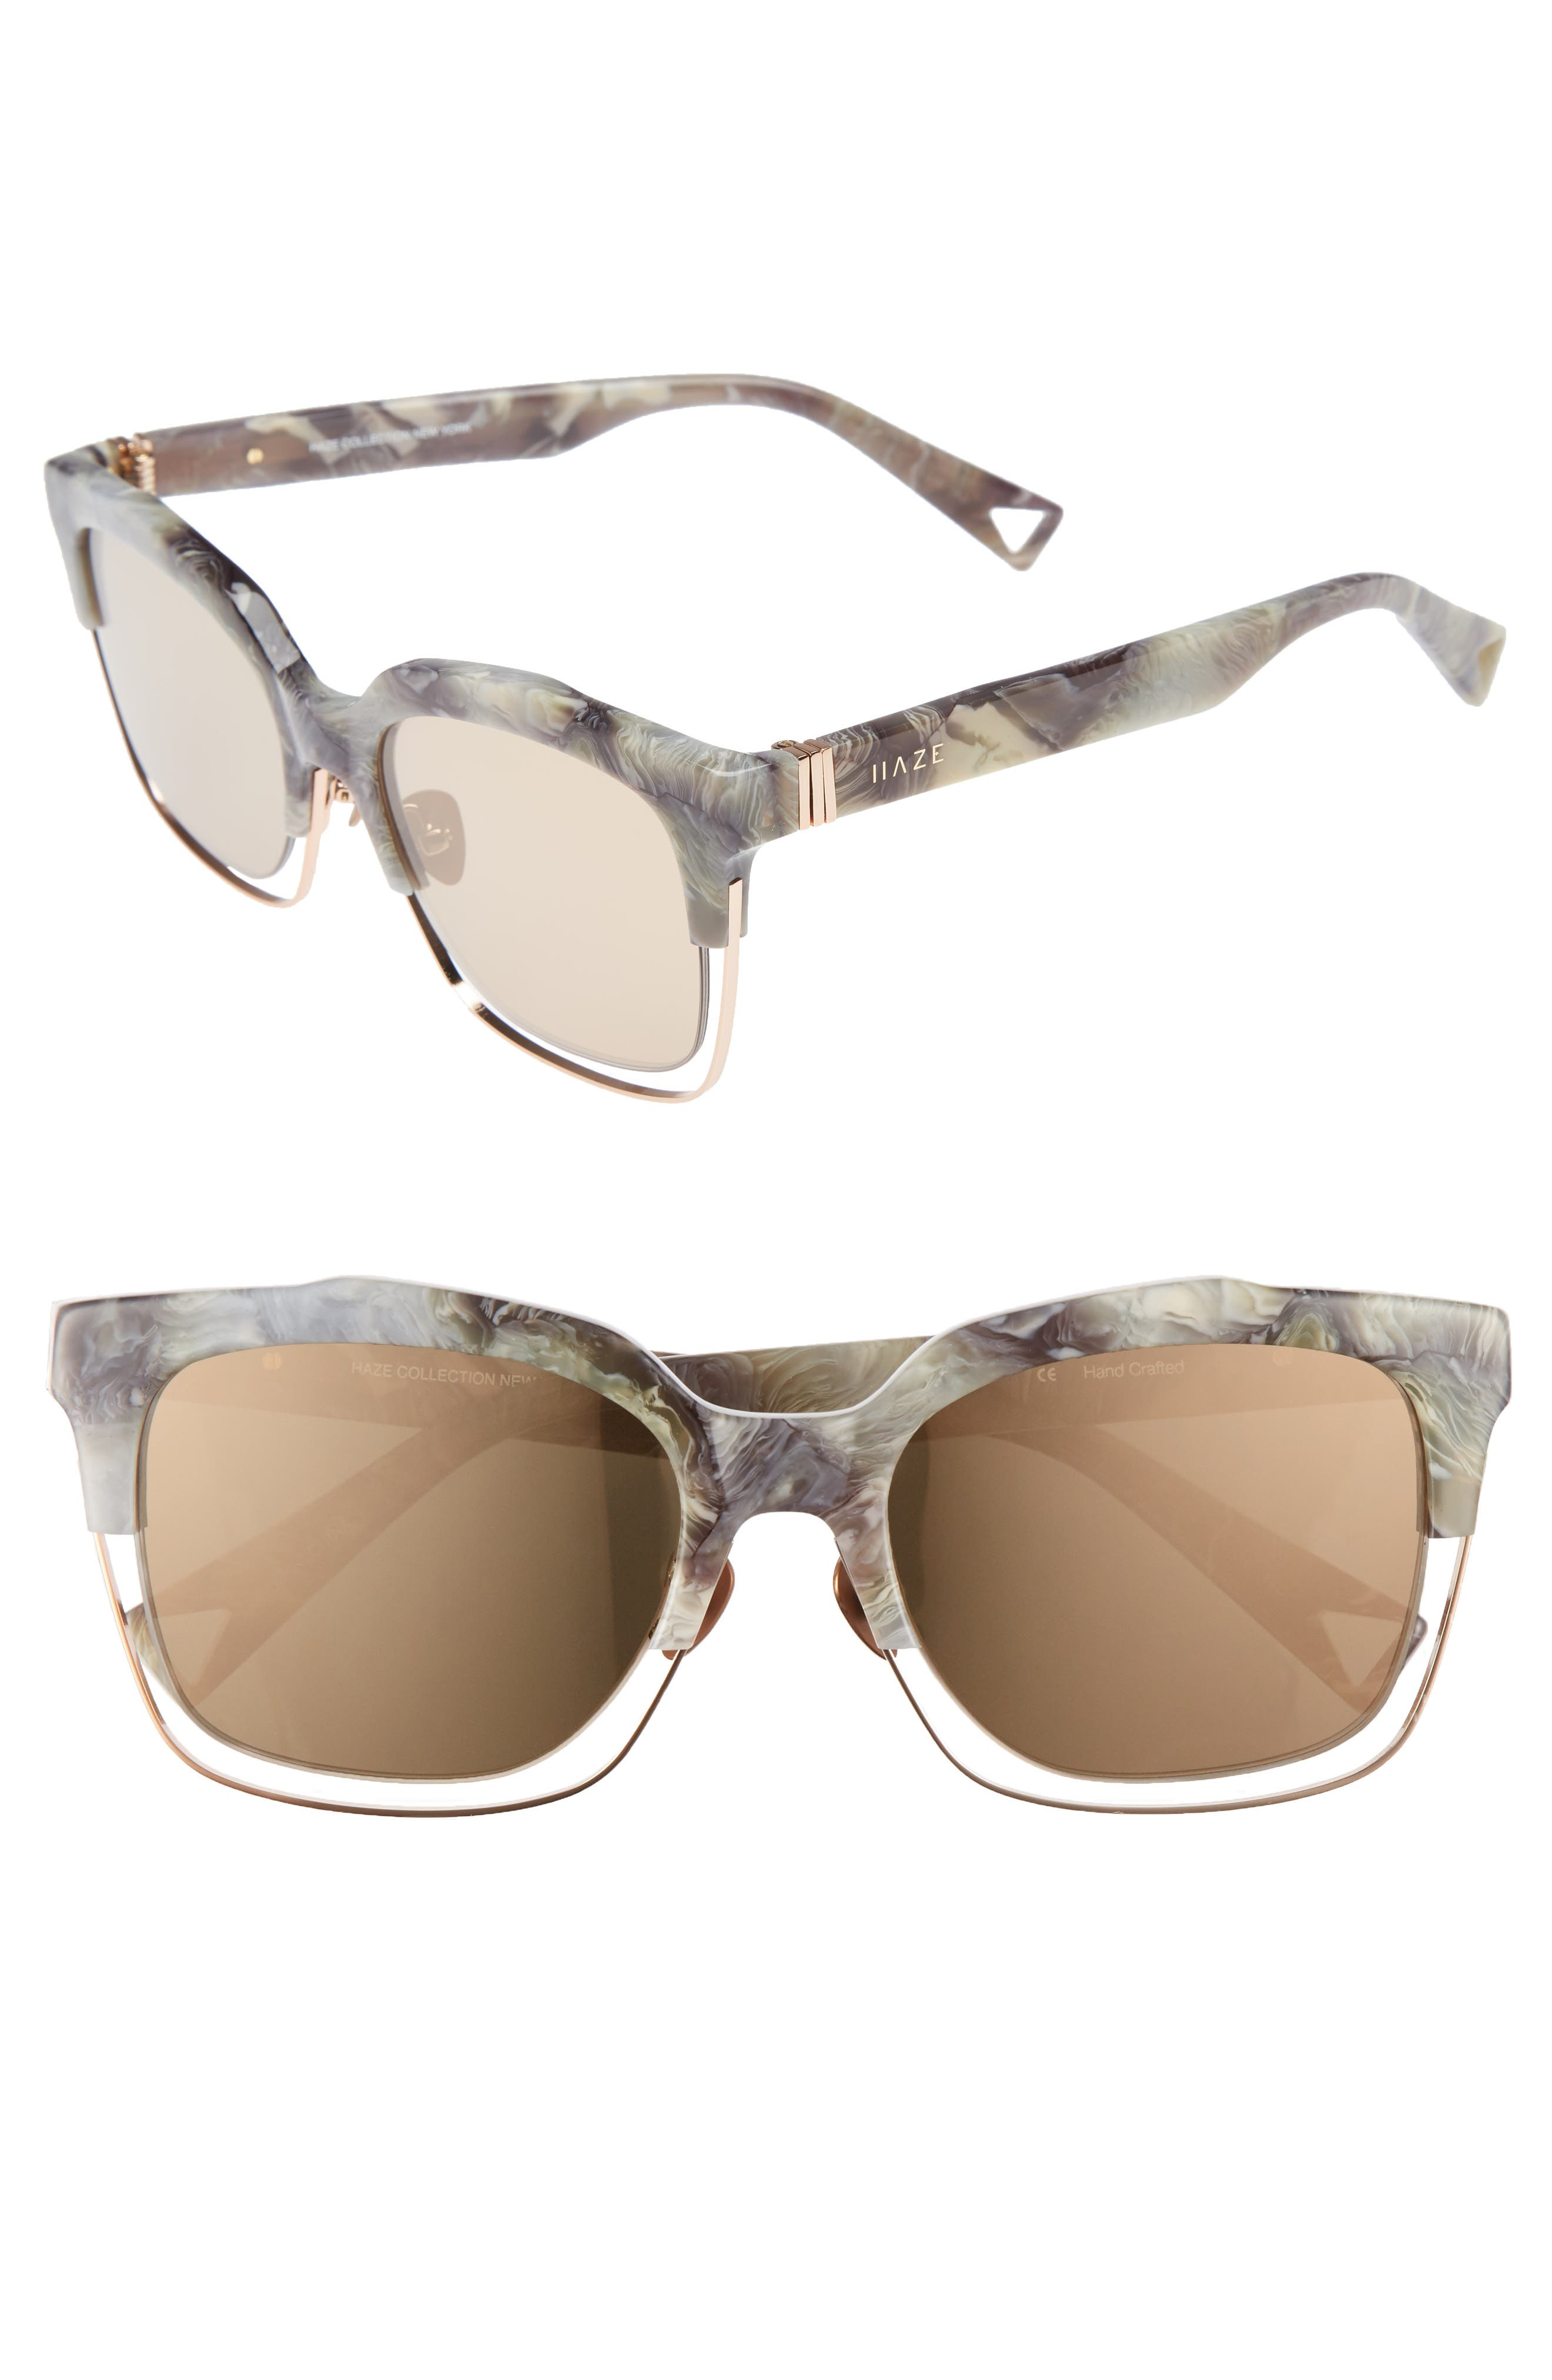 HAZE Buzz 55mm Mirrored Sunglasses